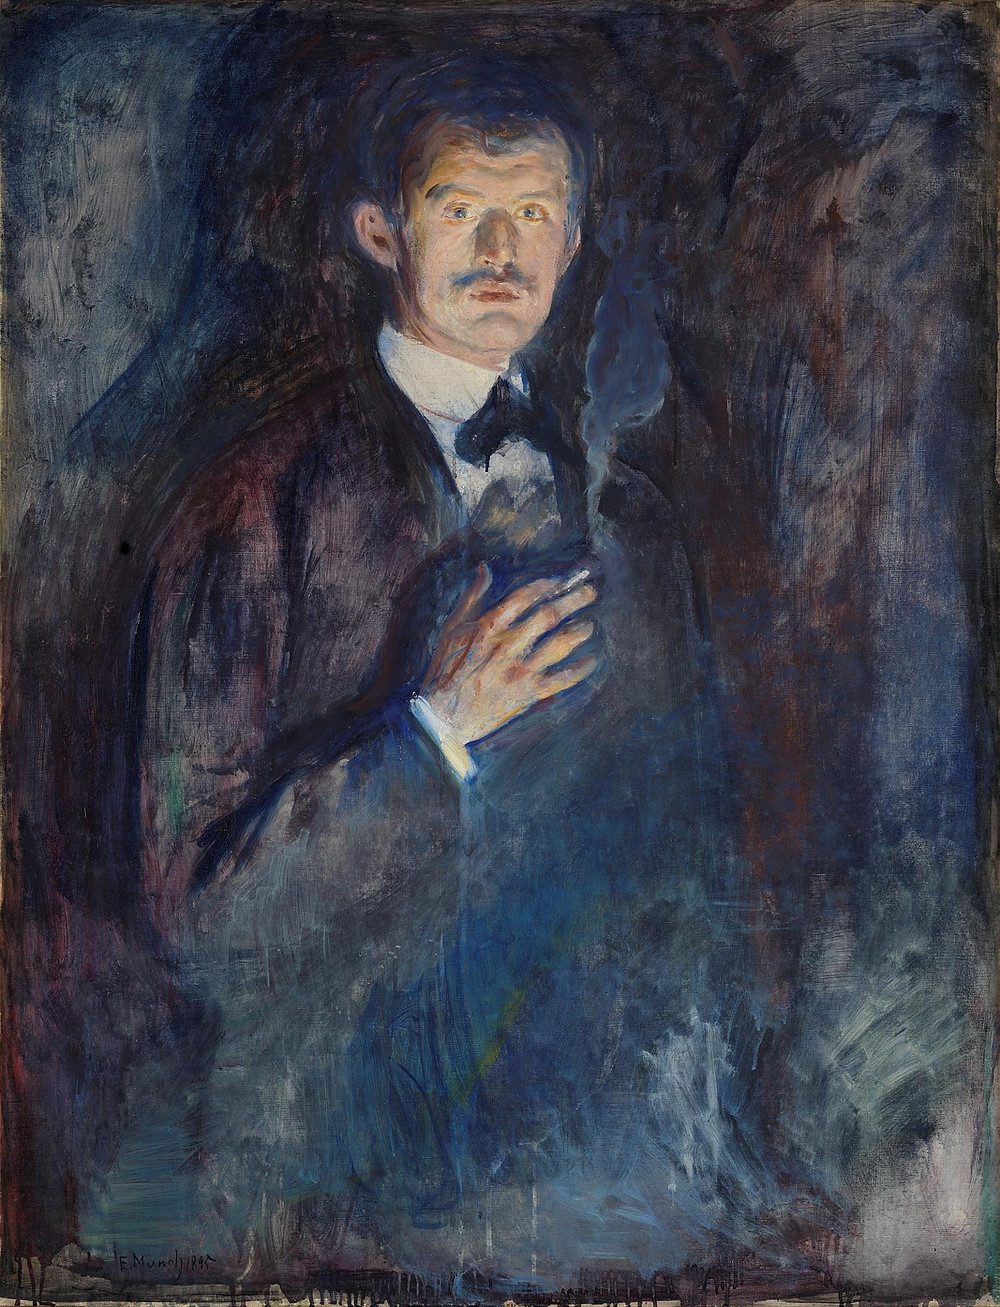 Edvard Munch Self-Portrait with Cigarette, 1895  -- here, Munch appears almost as a ghost who might disappear into the background